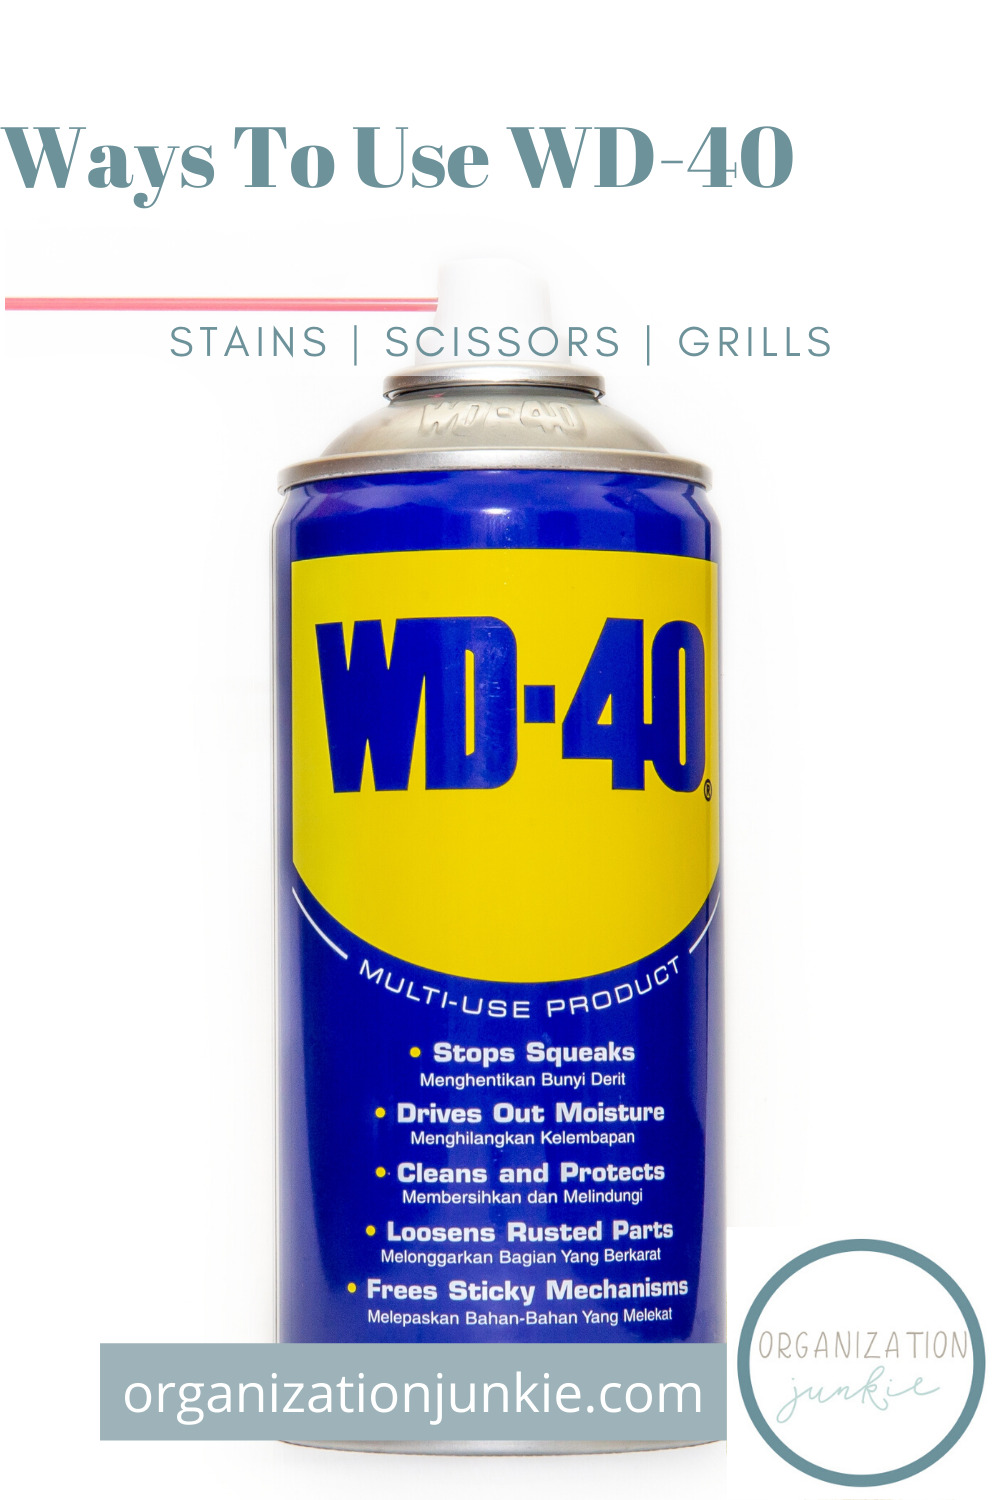 If you're like the majority of the world, you're always looking for cleaning tips! Did you know that WD-40 can help you clean your bathroom? See how! #waystousewd40 #cleaningtips #cleaninghacks #organizationjunkieblog